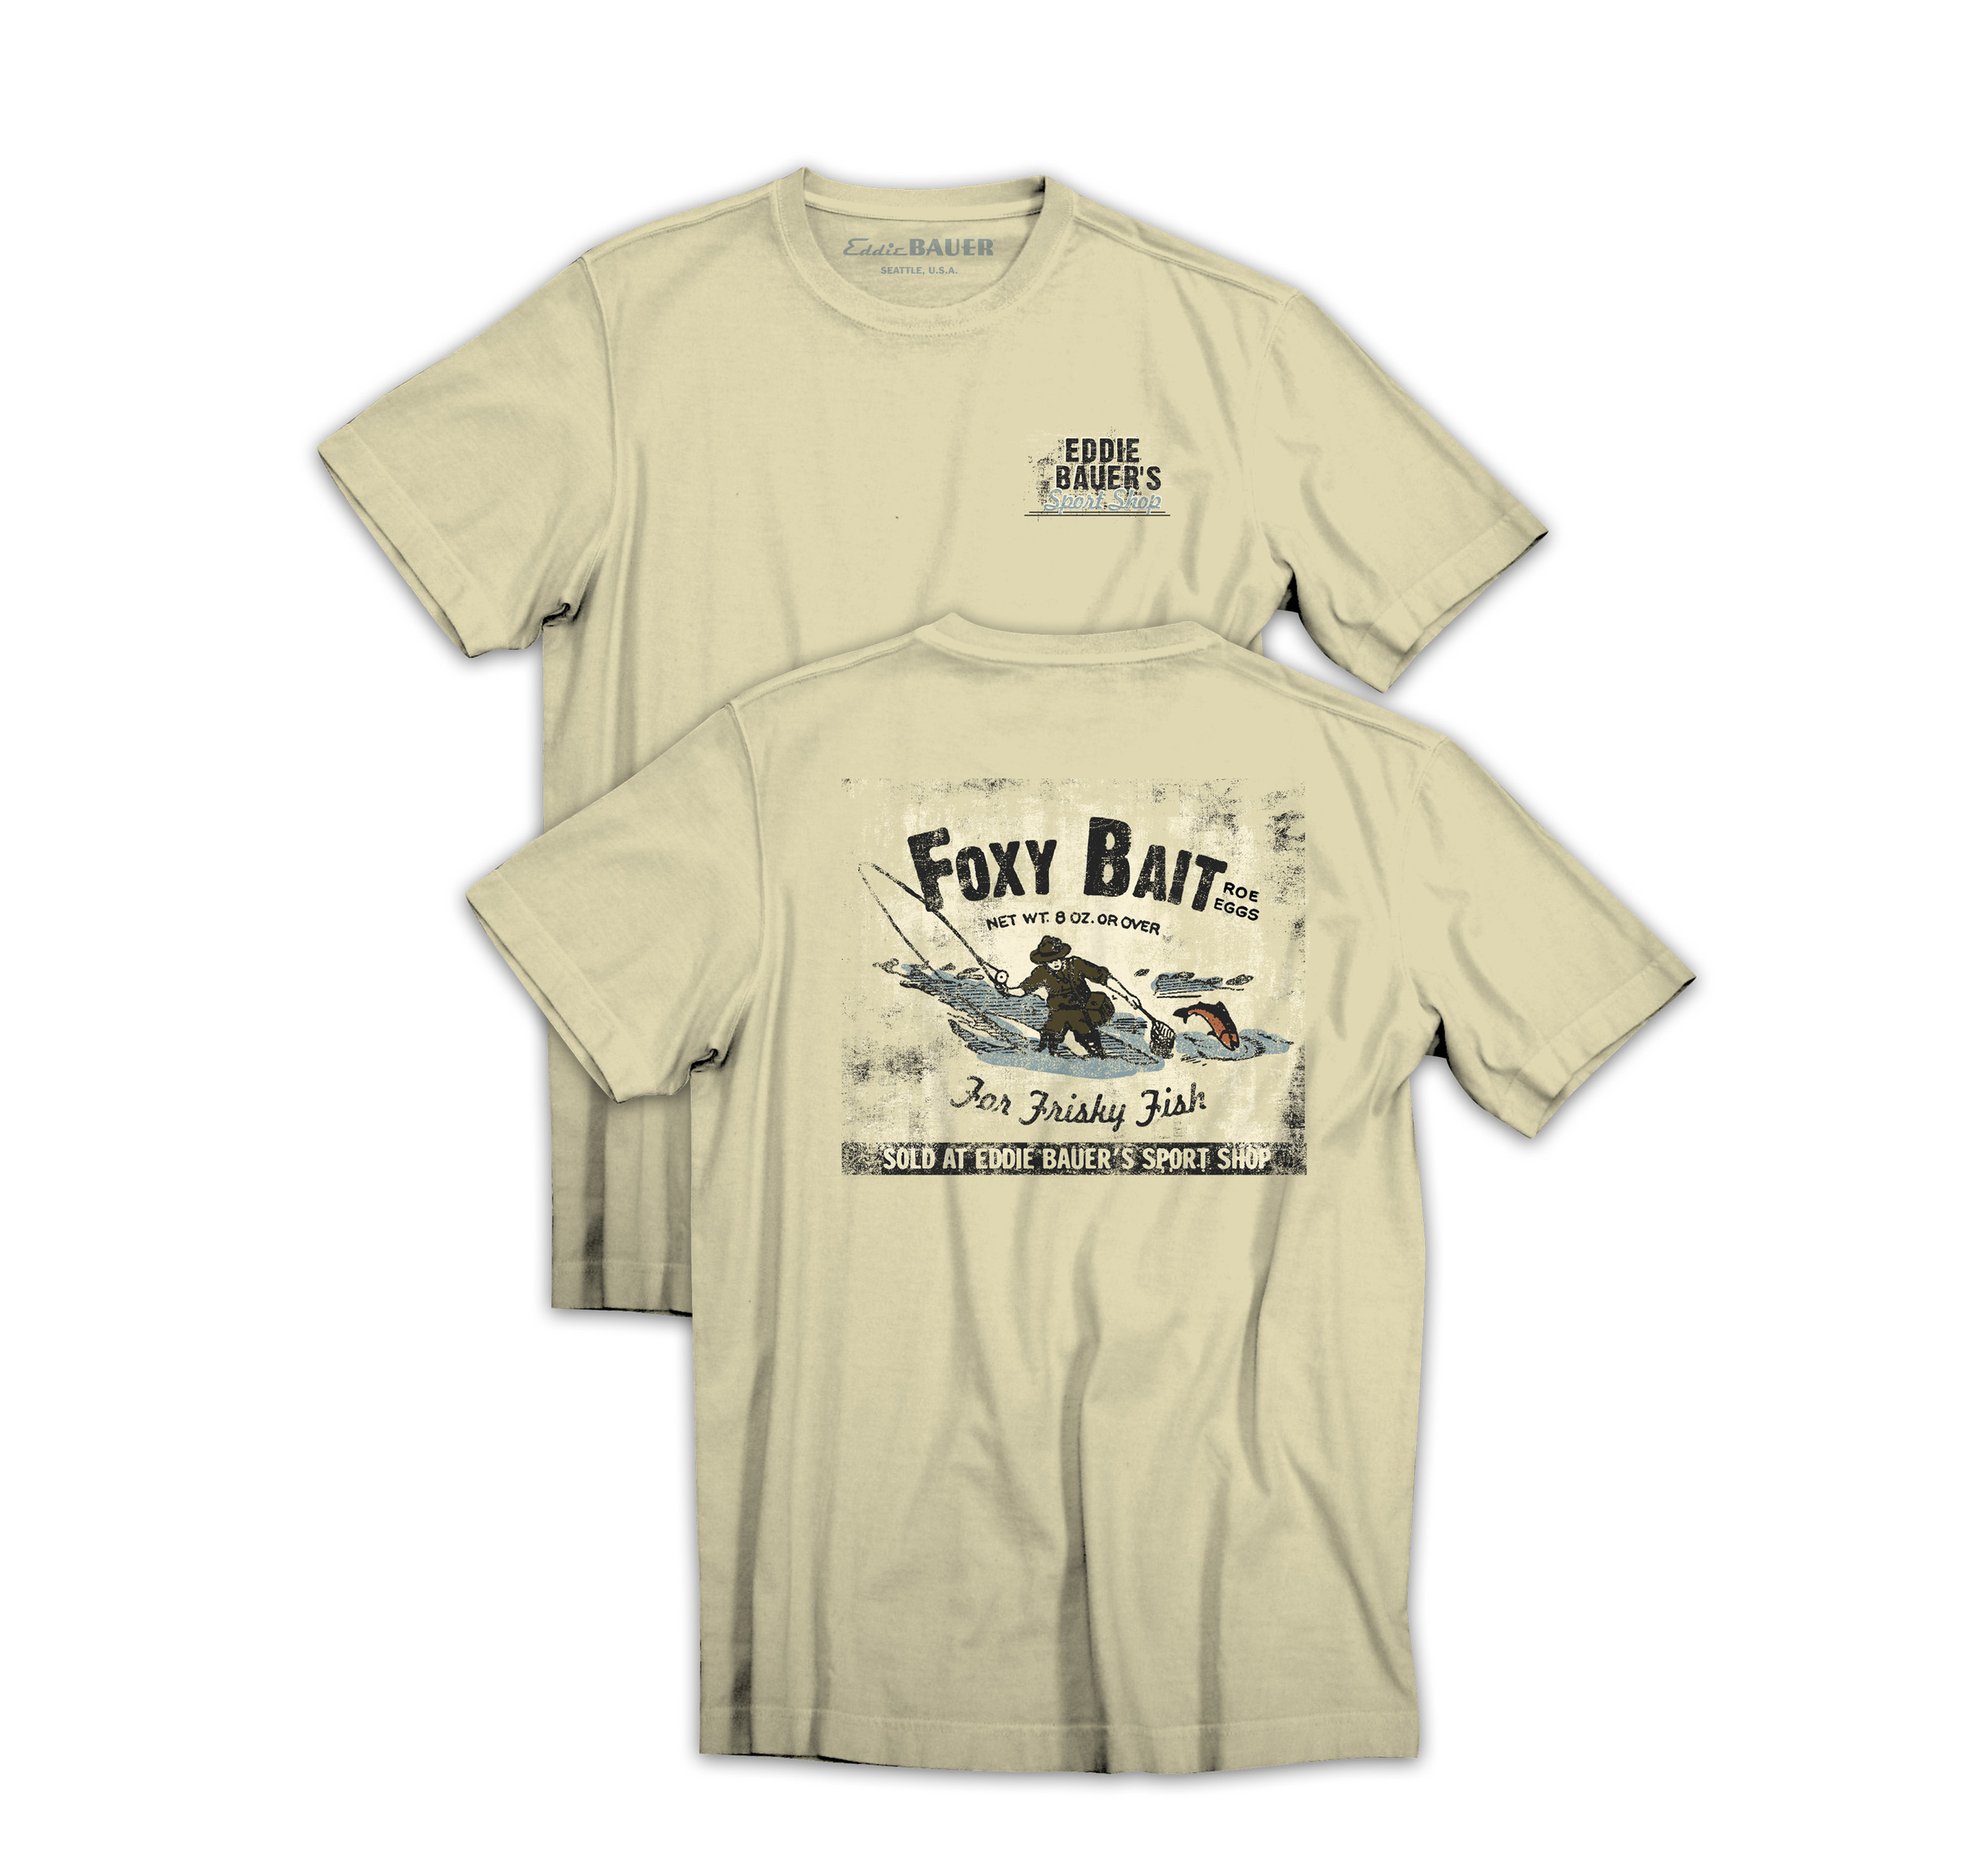 Mens graphic tees for Eddie Bauer